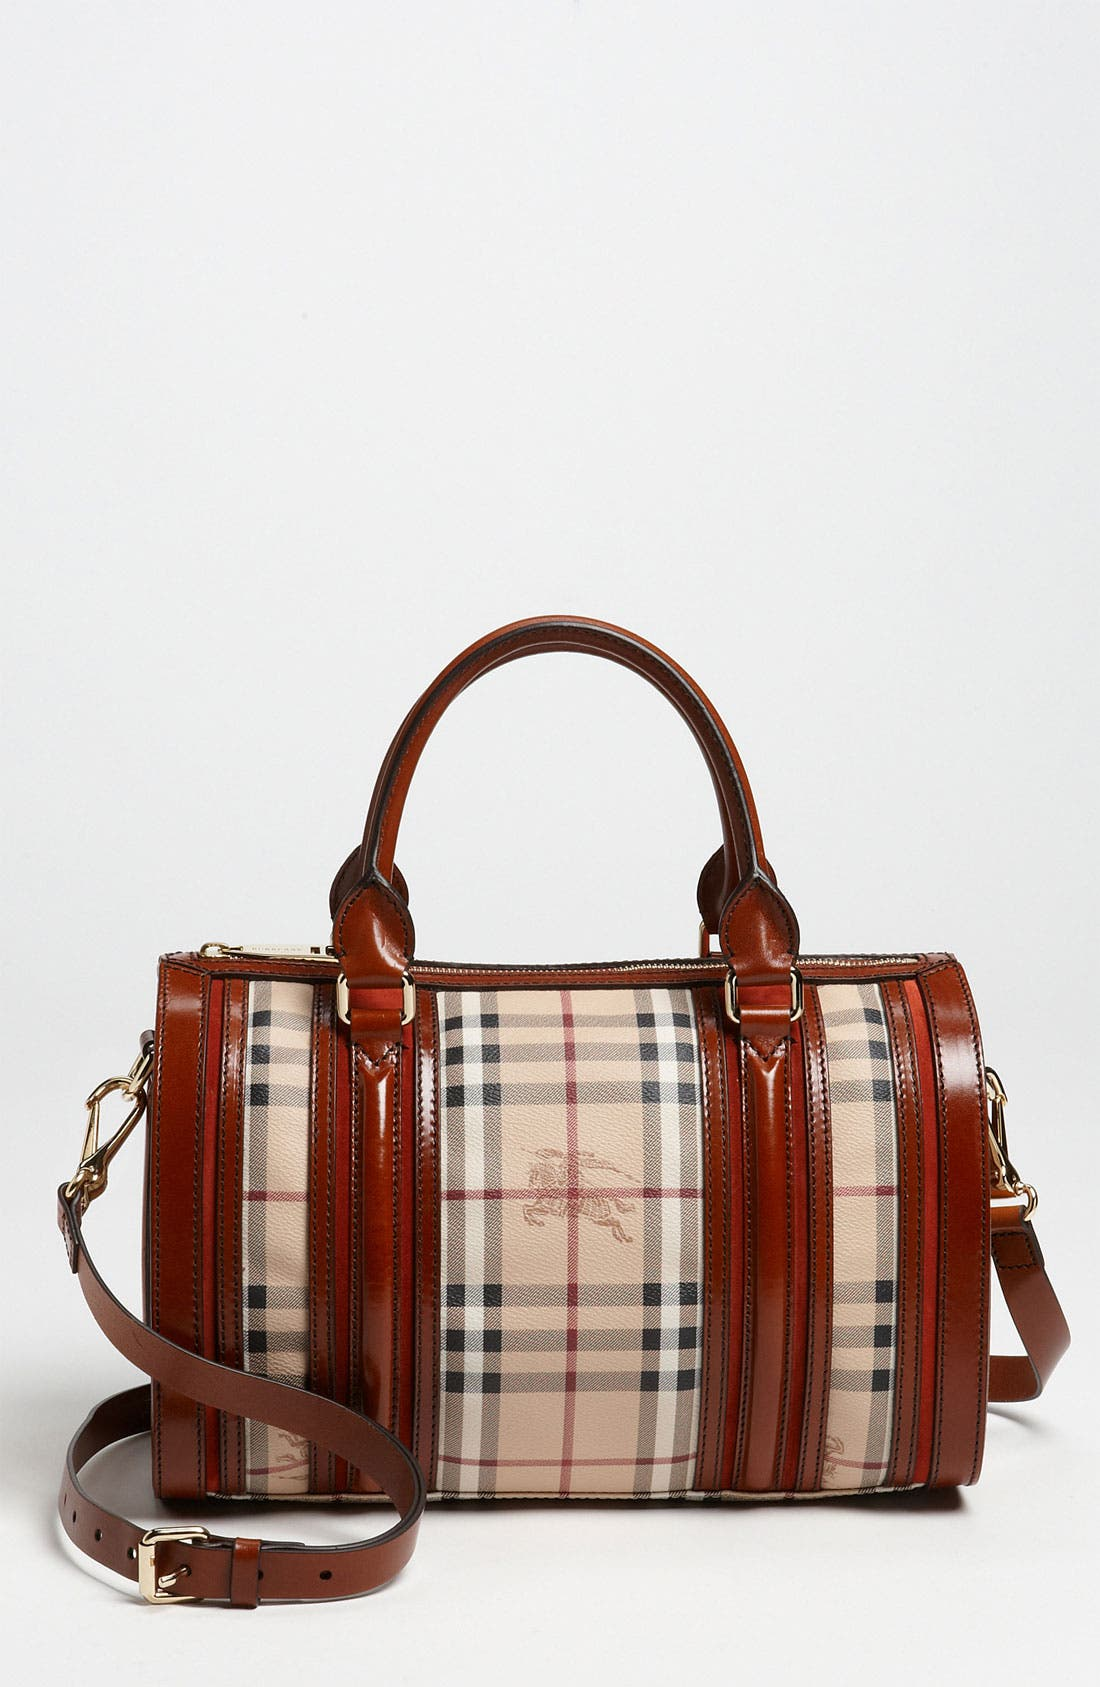 Alternate Image 1 Selected - Burberry 'Haymarket Check' Satchel